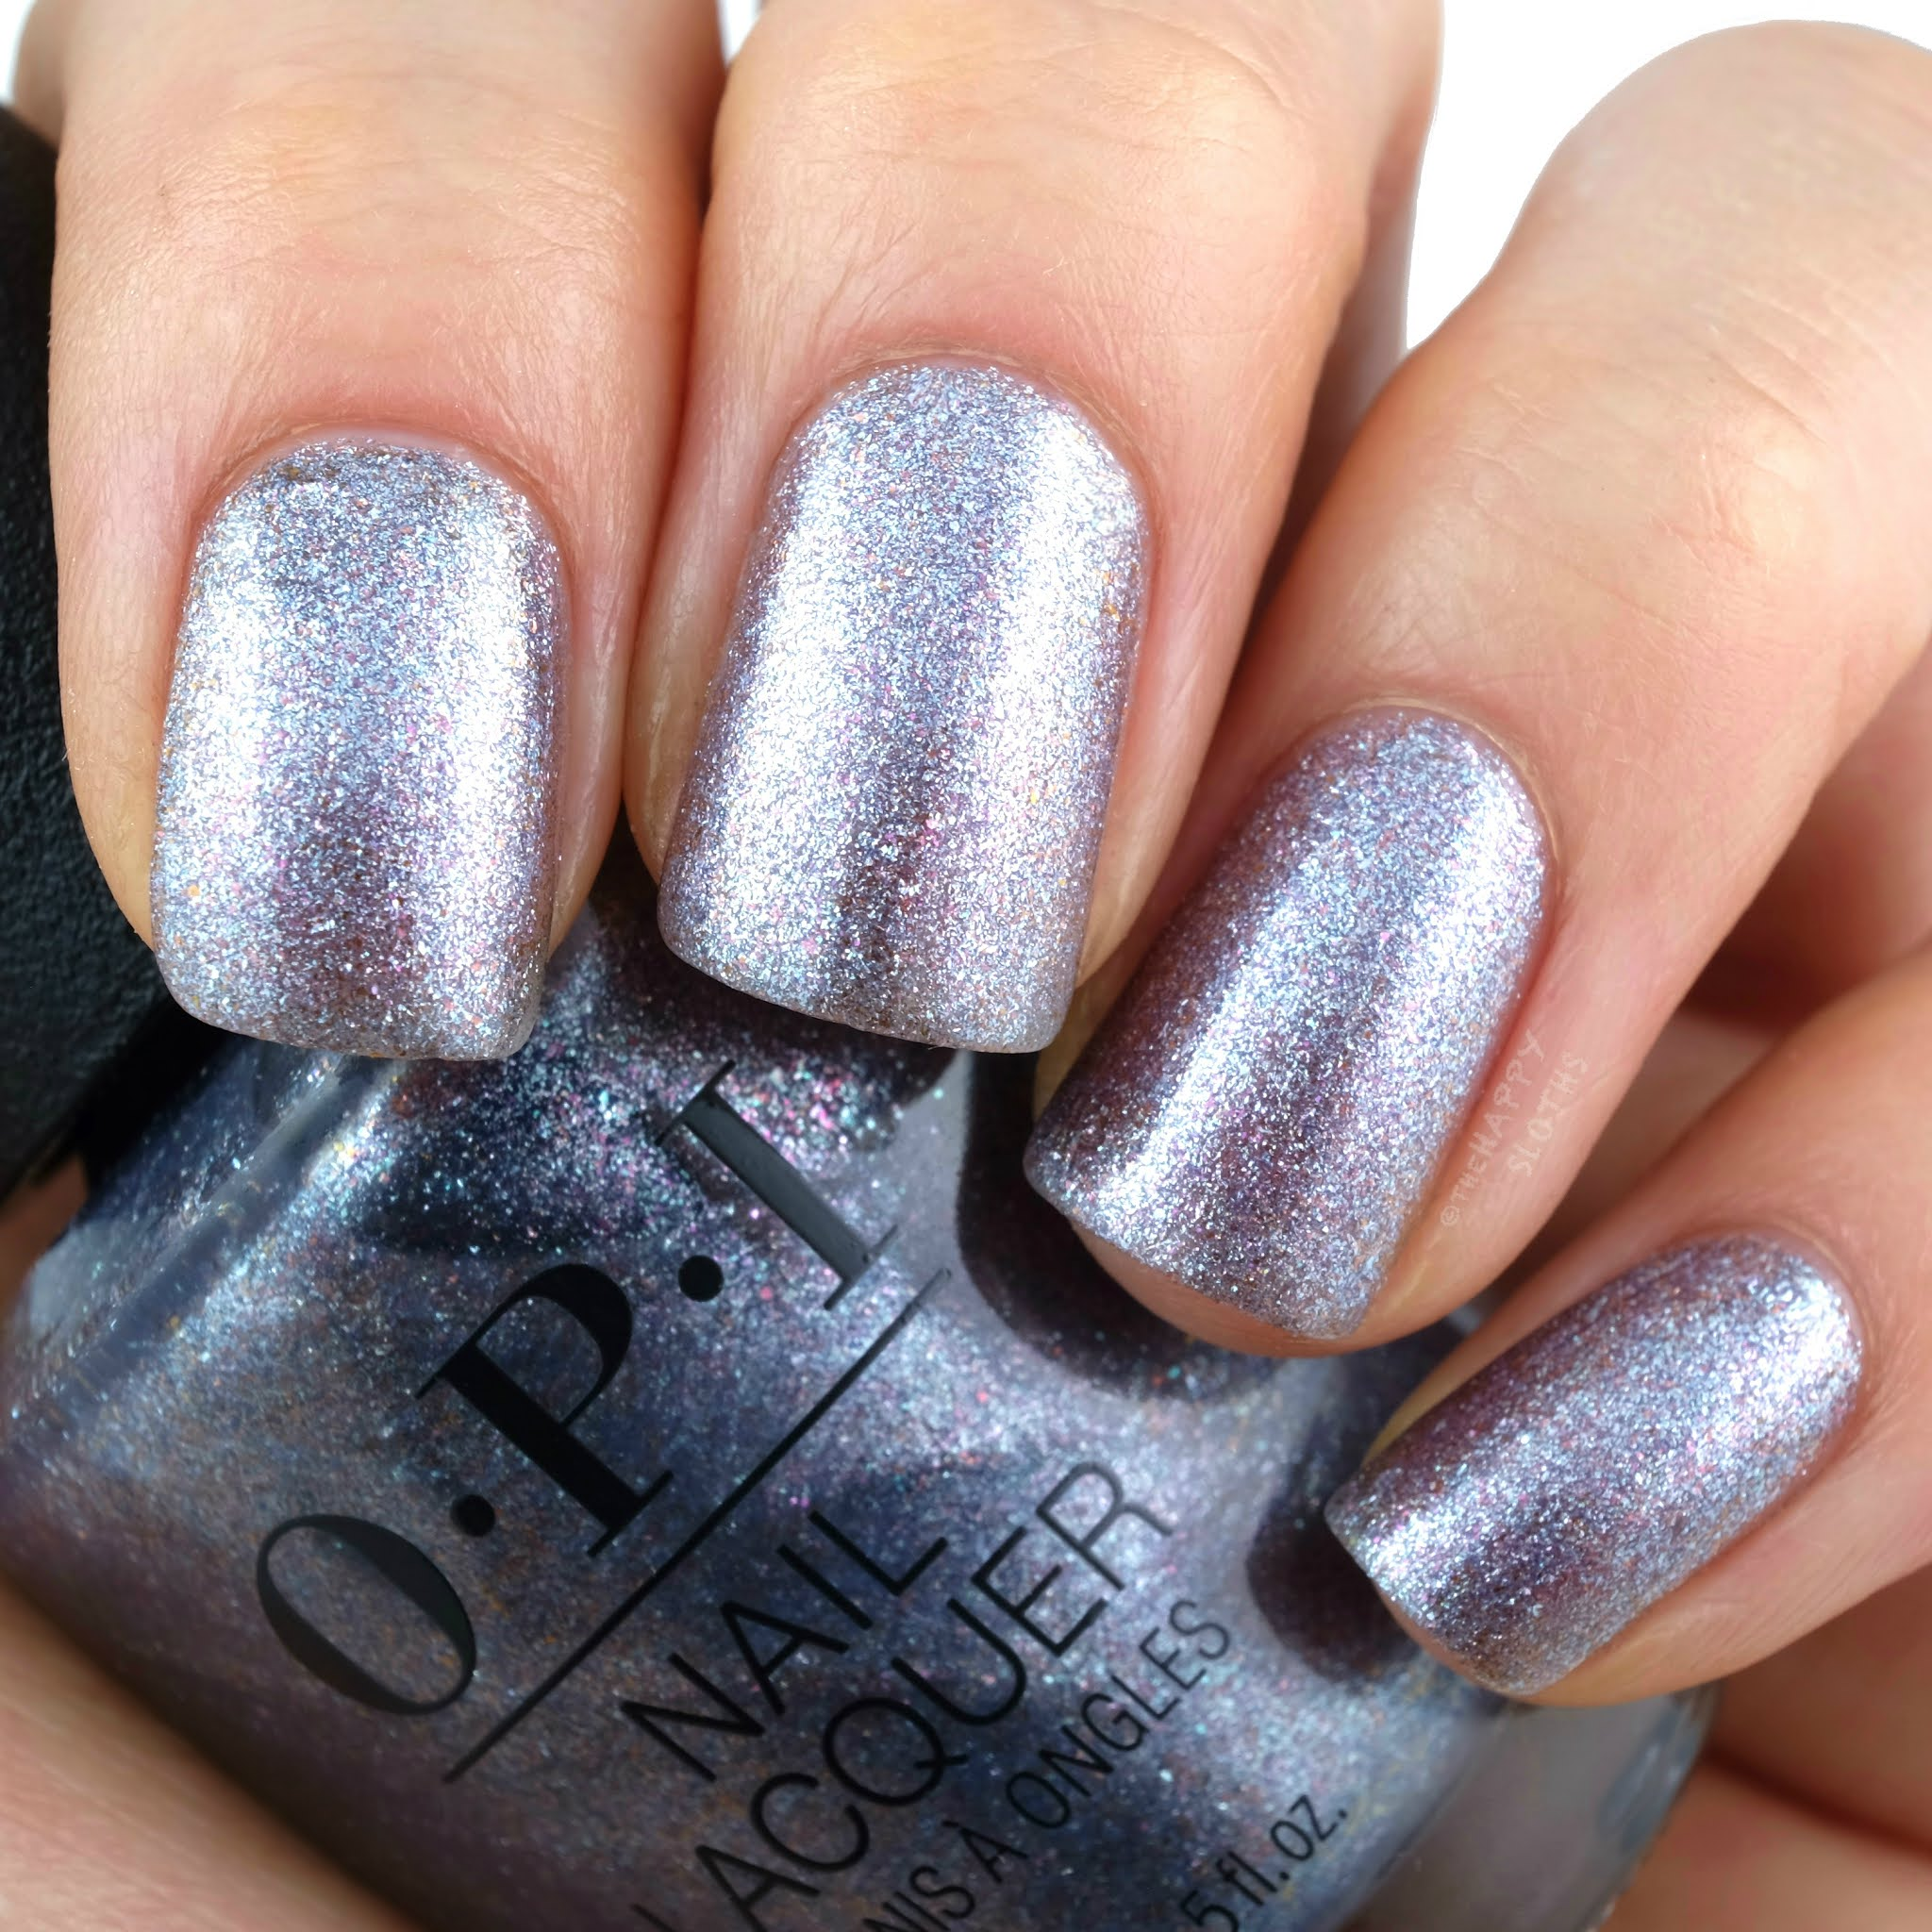 OPI Fall 2020 | OPI Nails the Runway: Review and Swatches